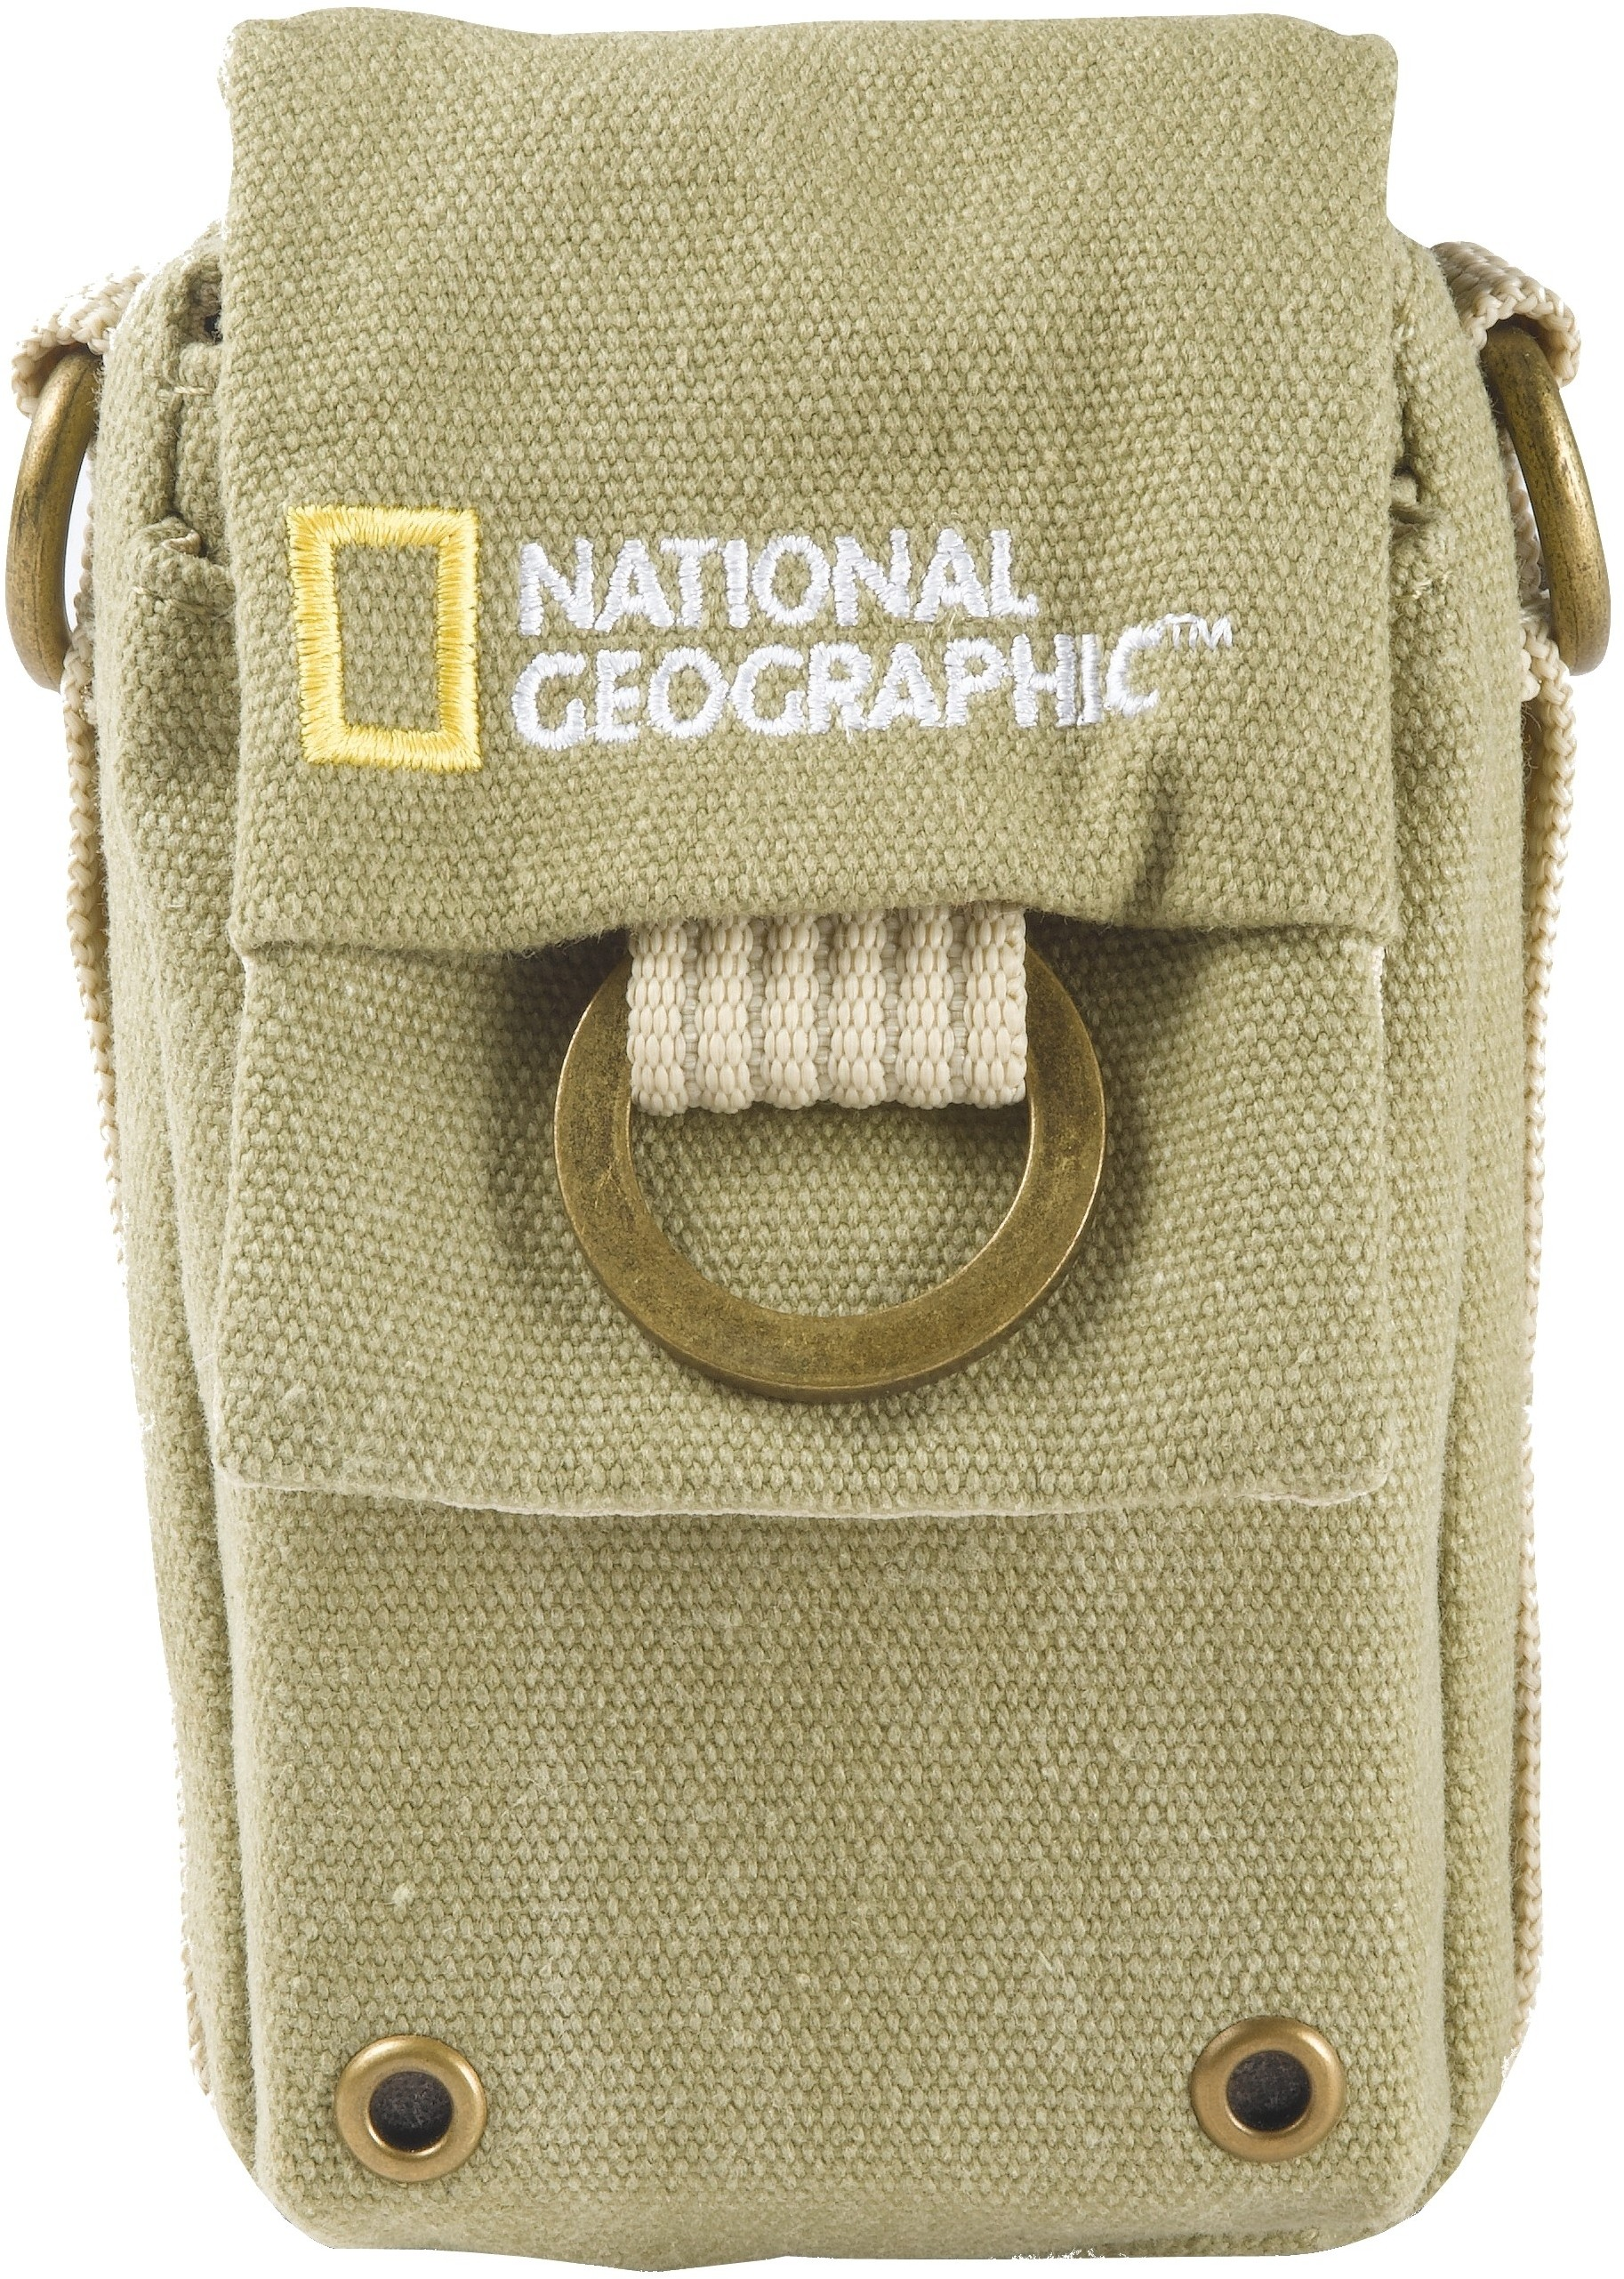 Jual National Geographic A2560 Medium Satchel Bag Termurah 2018 Natgeo Tas Kamera A2140 Midi Coklat Price List In India Buy Ng 1149 Earth Explorer Little